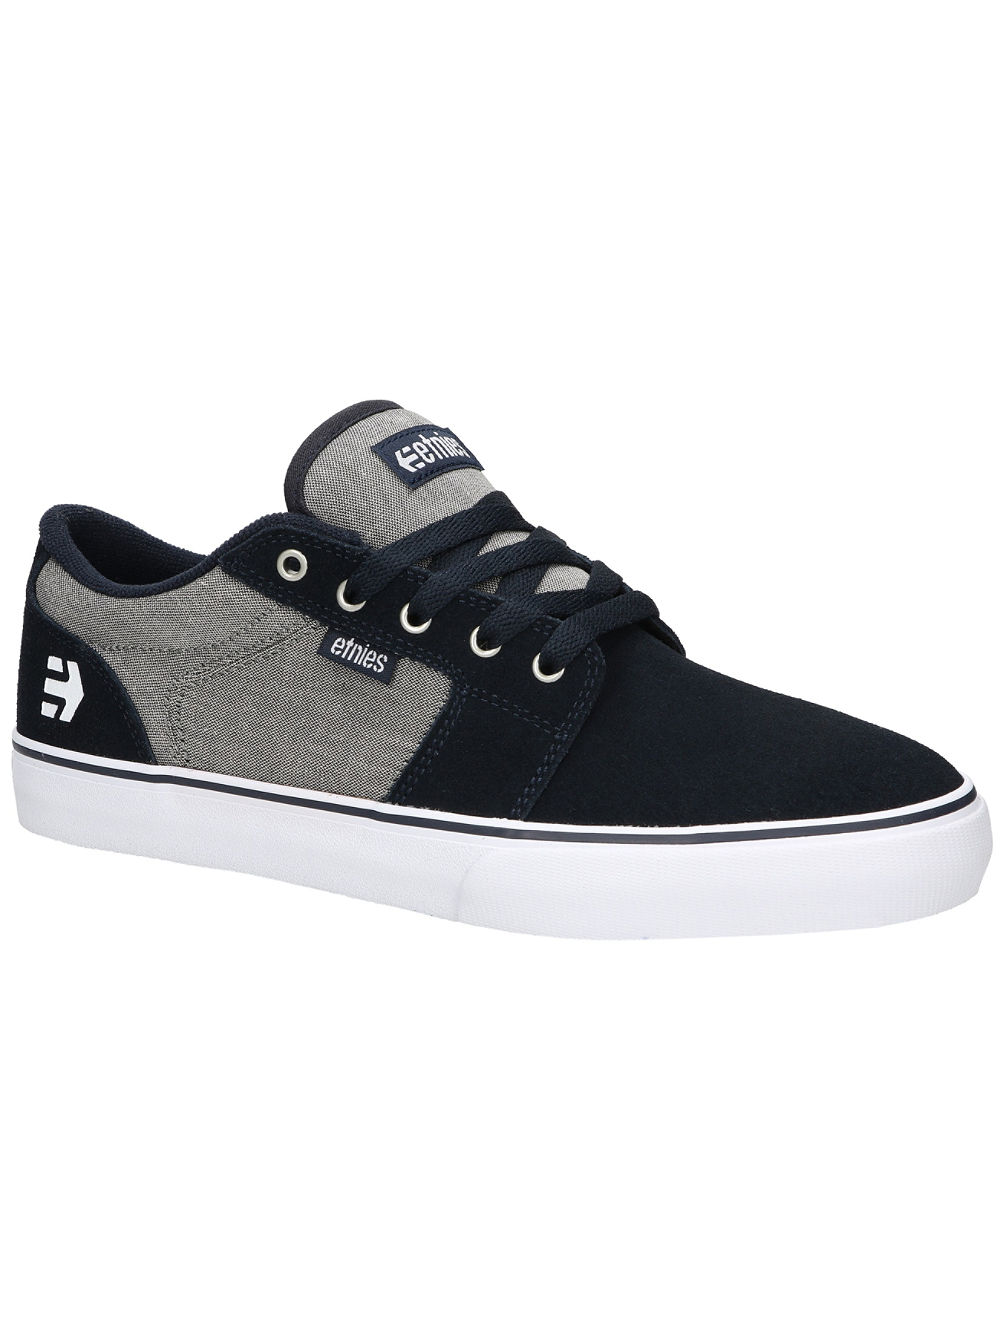 Barge LS Skate Shoes